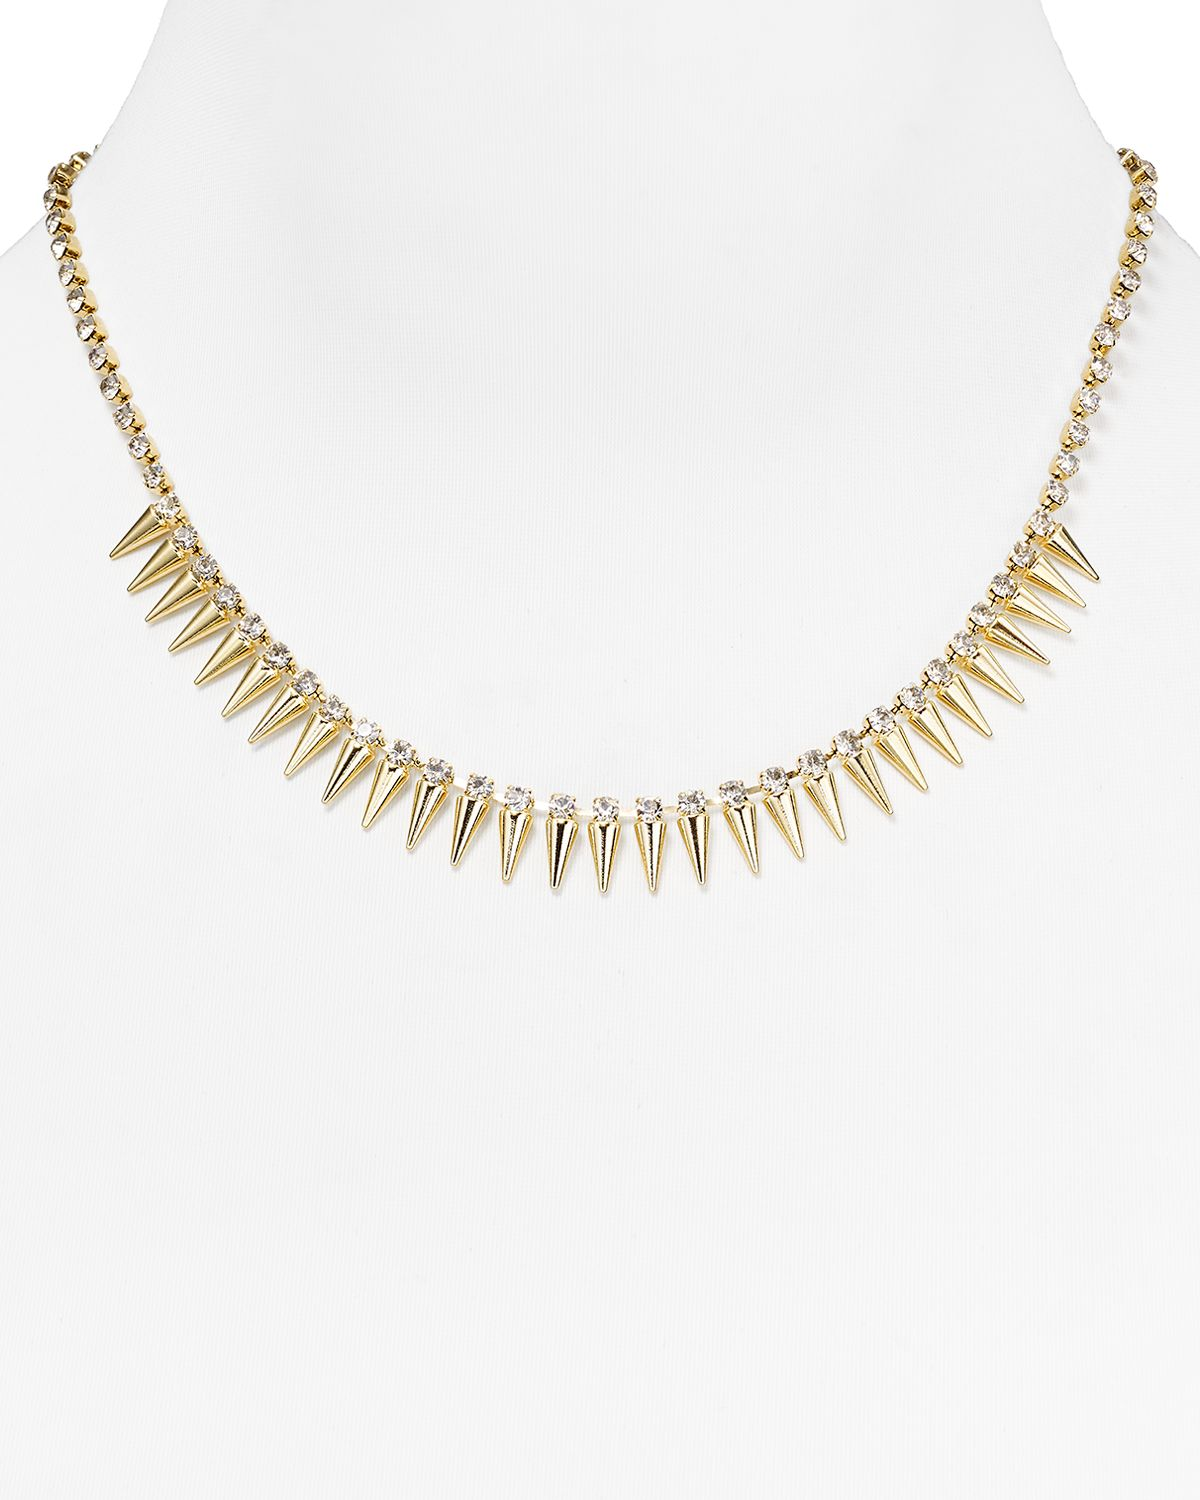 ABS by Allen Schwartz Modern Savage Spike Necklace, 17"